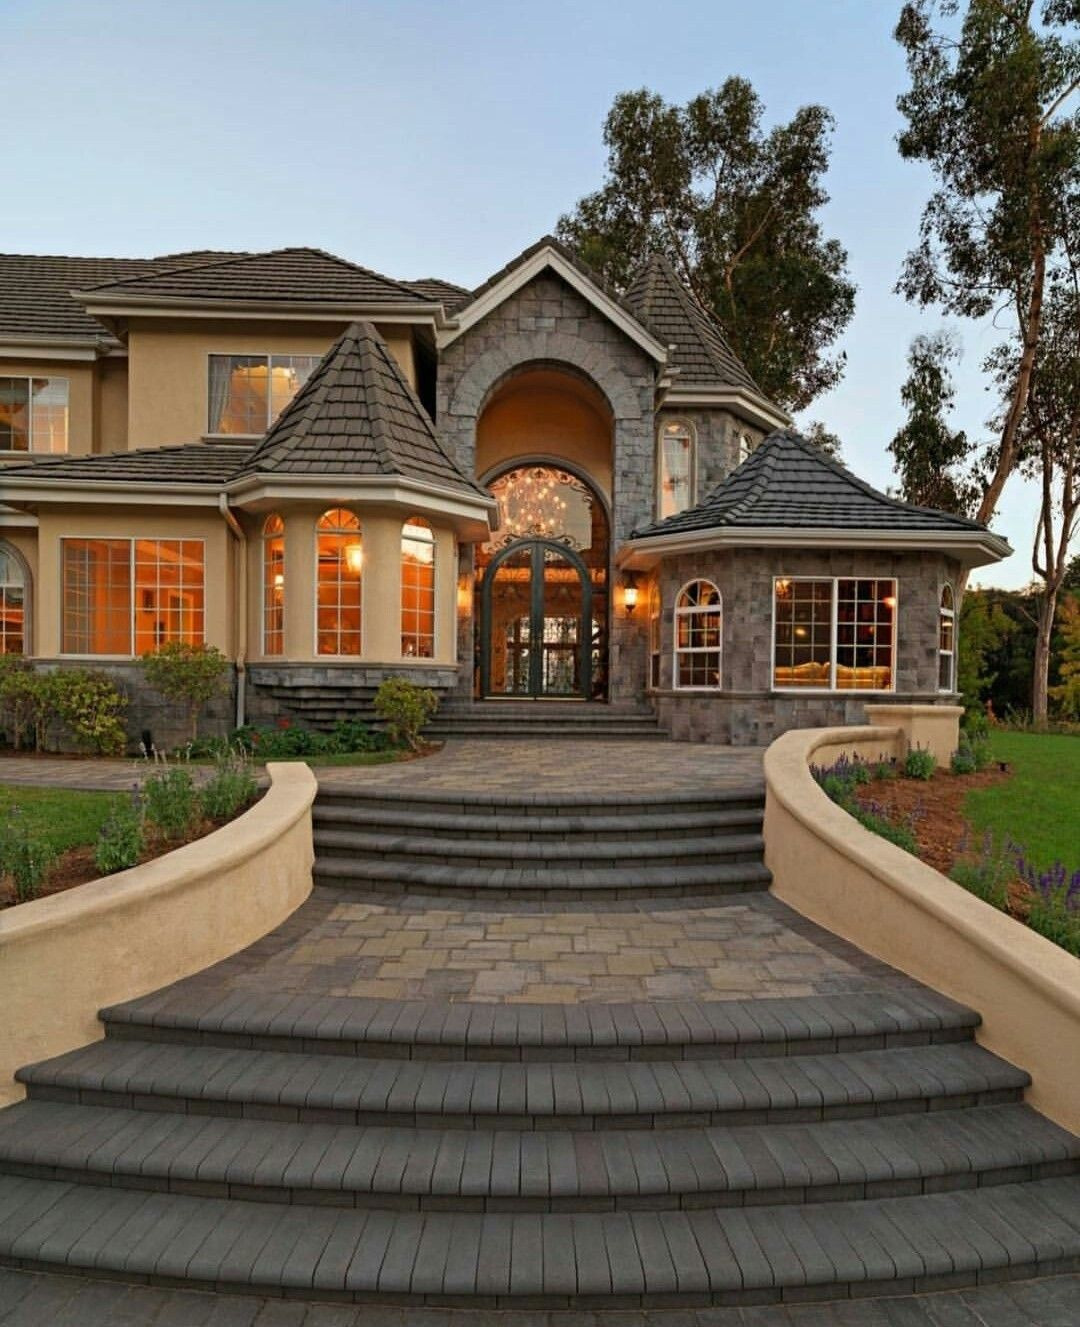 The Best Mansion Ever Elegant 38 Popular Dream In 2020 with Images